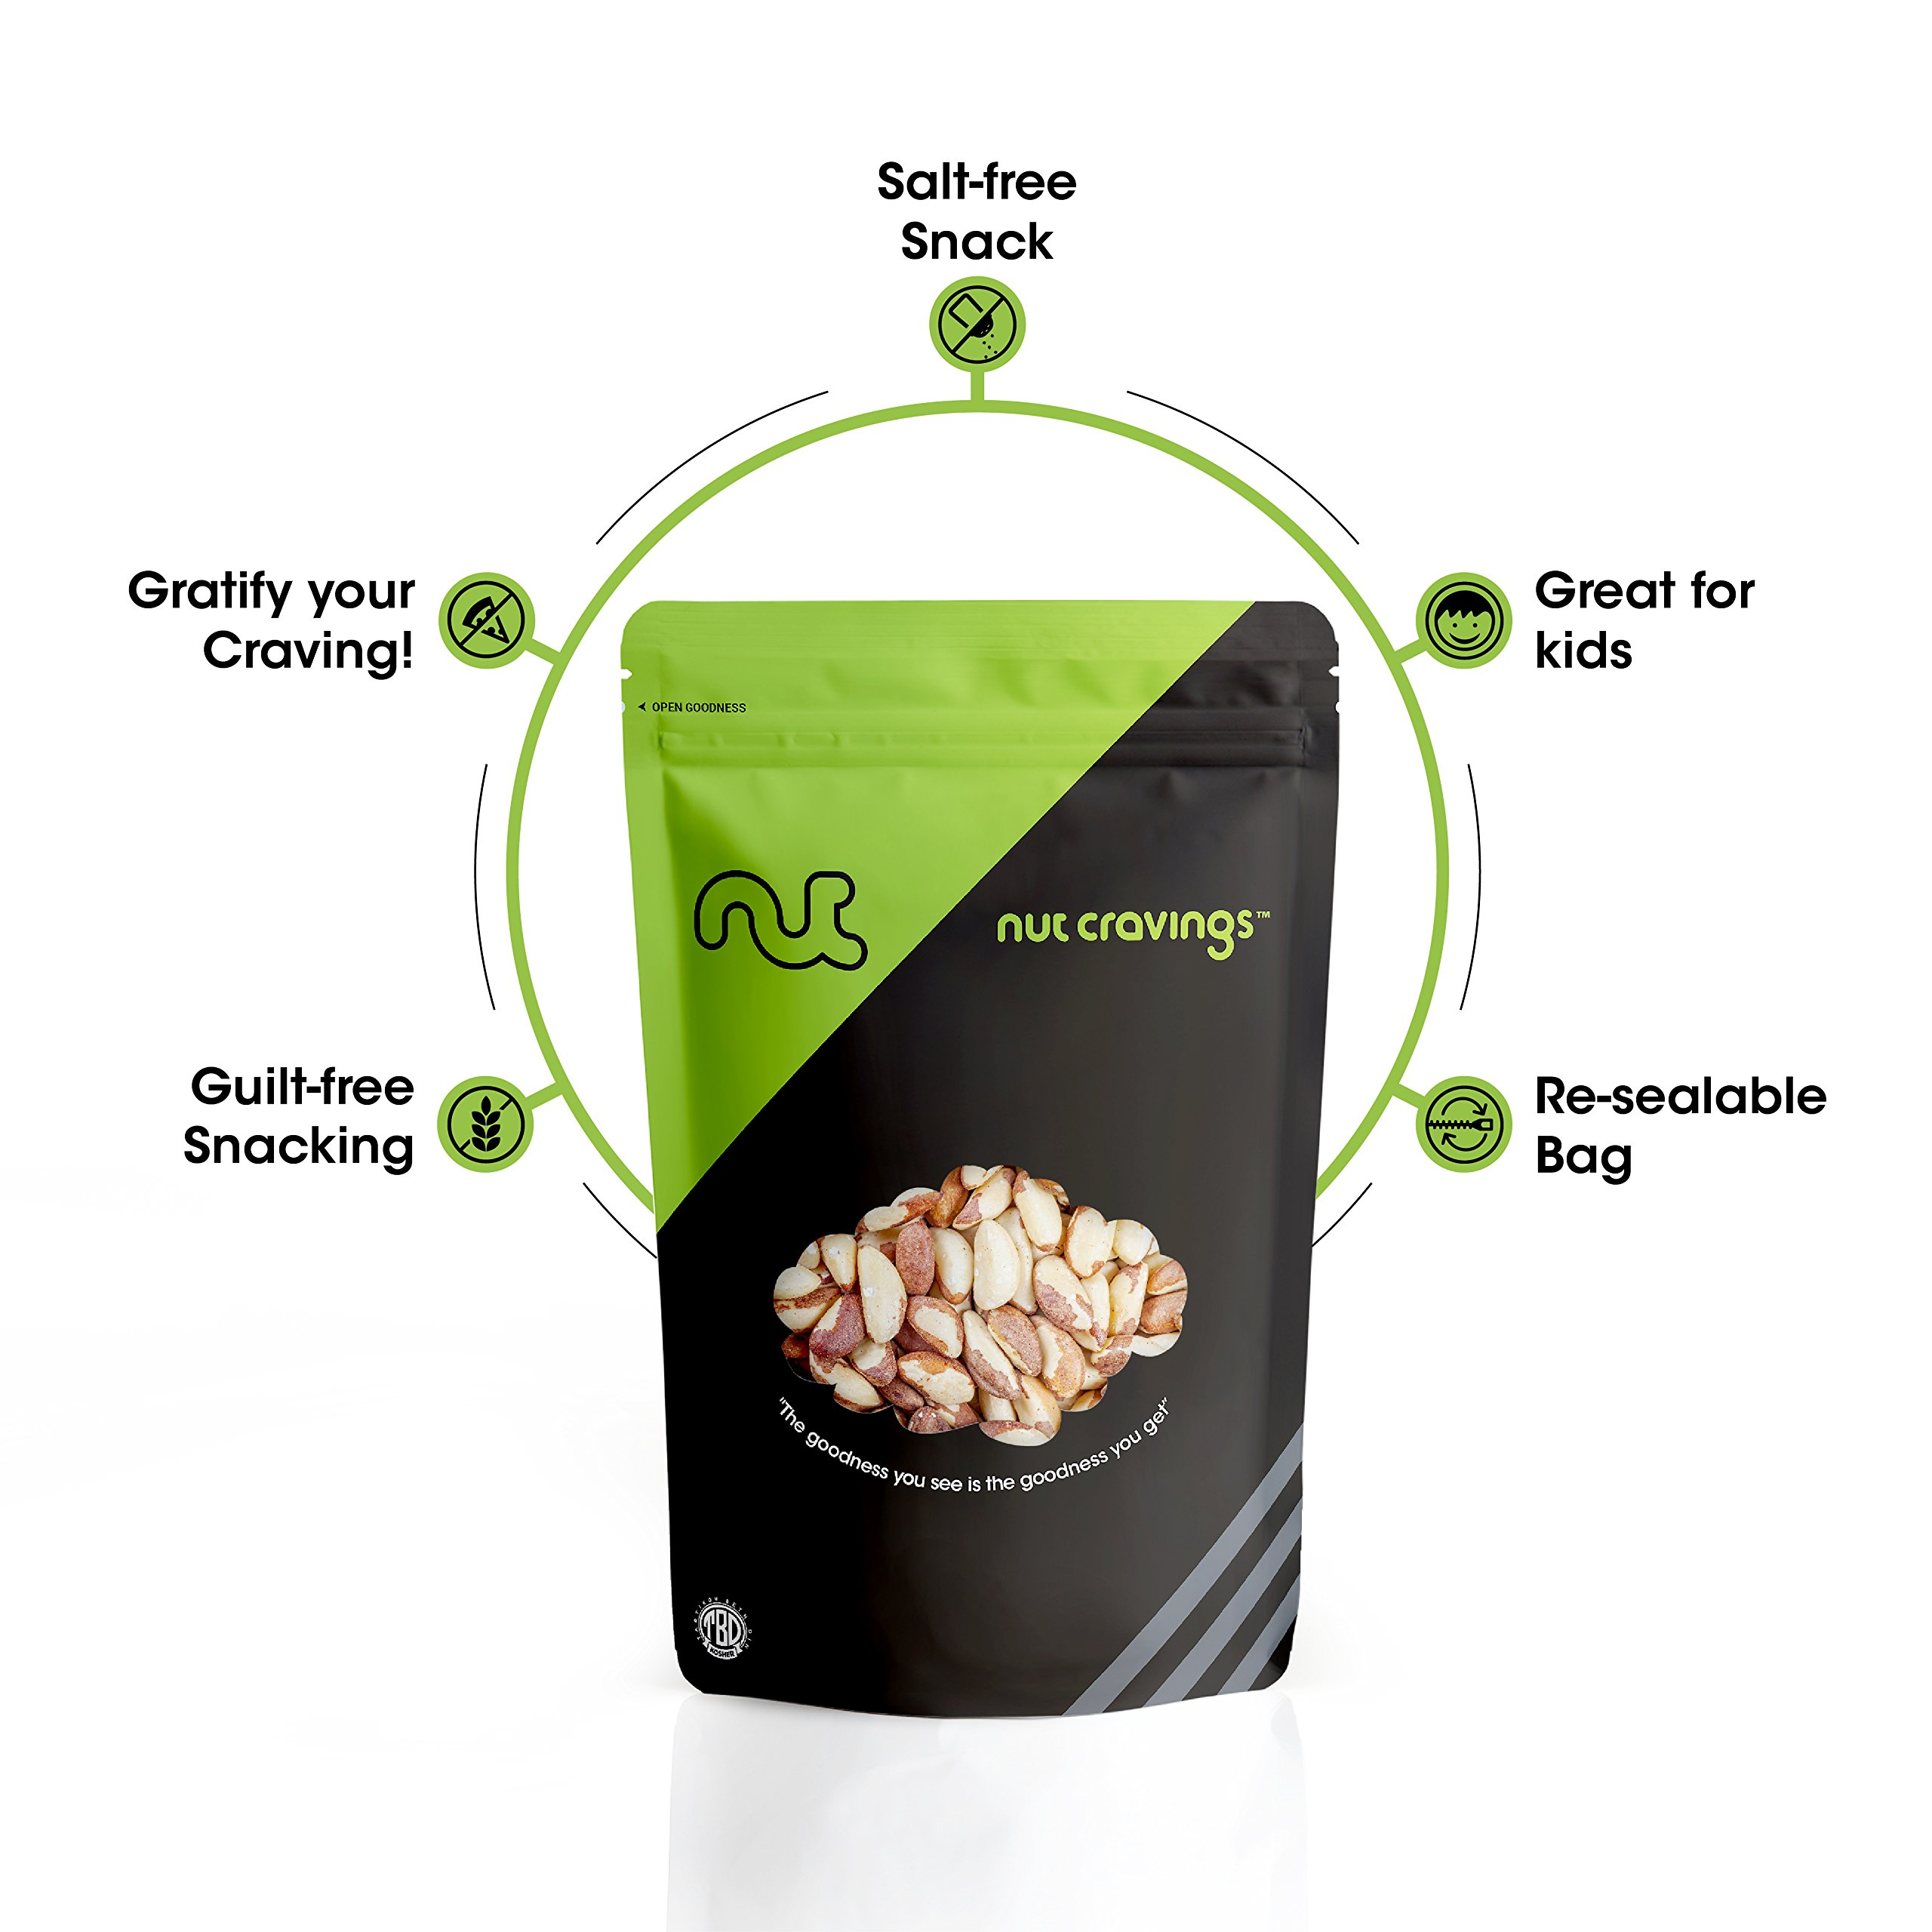 Nut Cravings Raw Brazil Nuts (1 Pound) – Whole, Compare To Organic, Unsalted, No Shell Brazilian Nuts – 16 Ounce by Nut Cravings (Image #4)